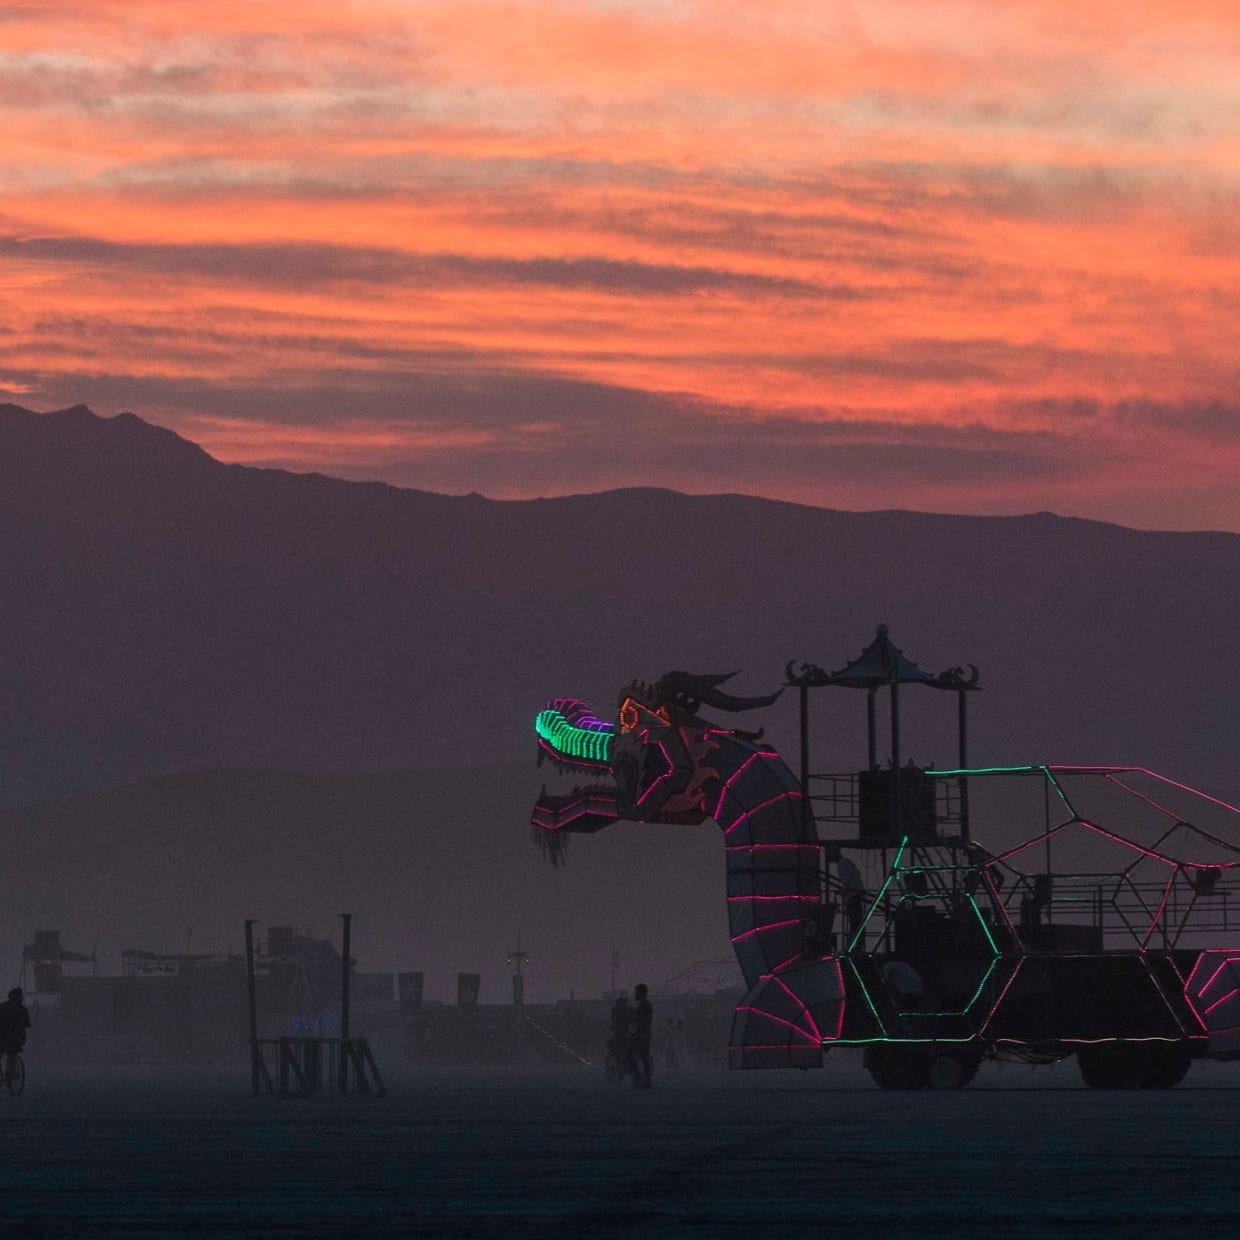 Then you even visit Burning Man